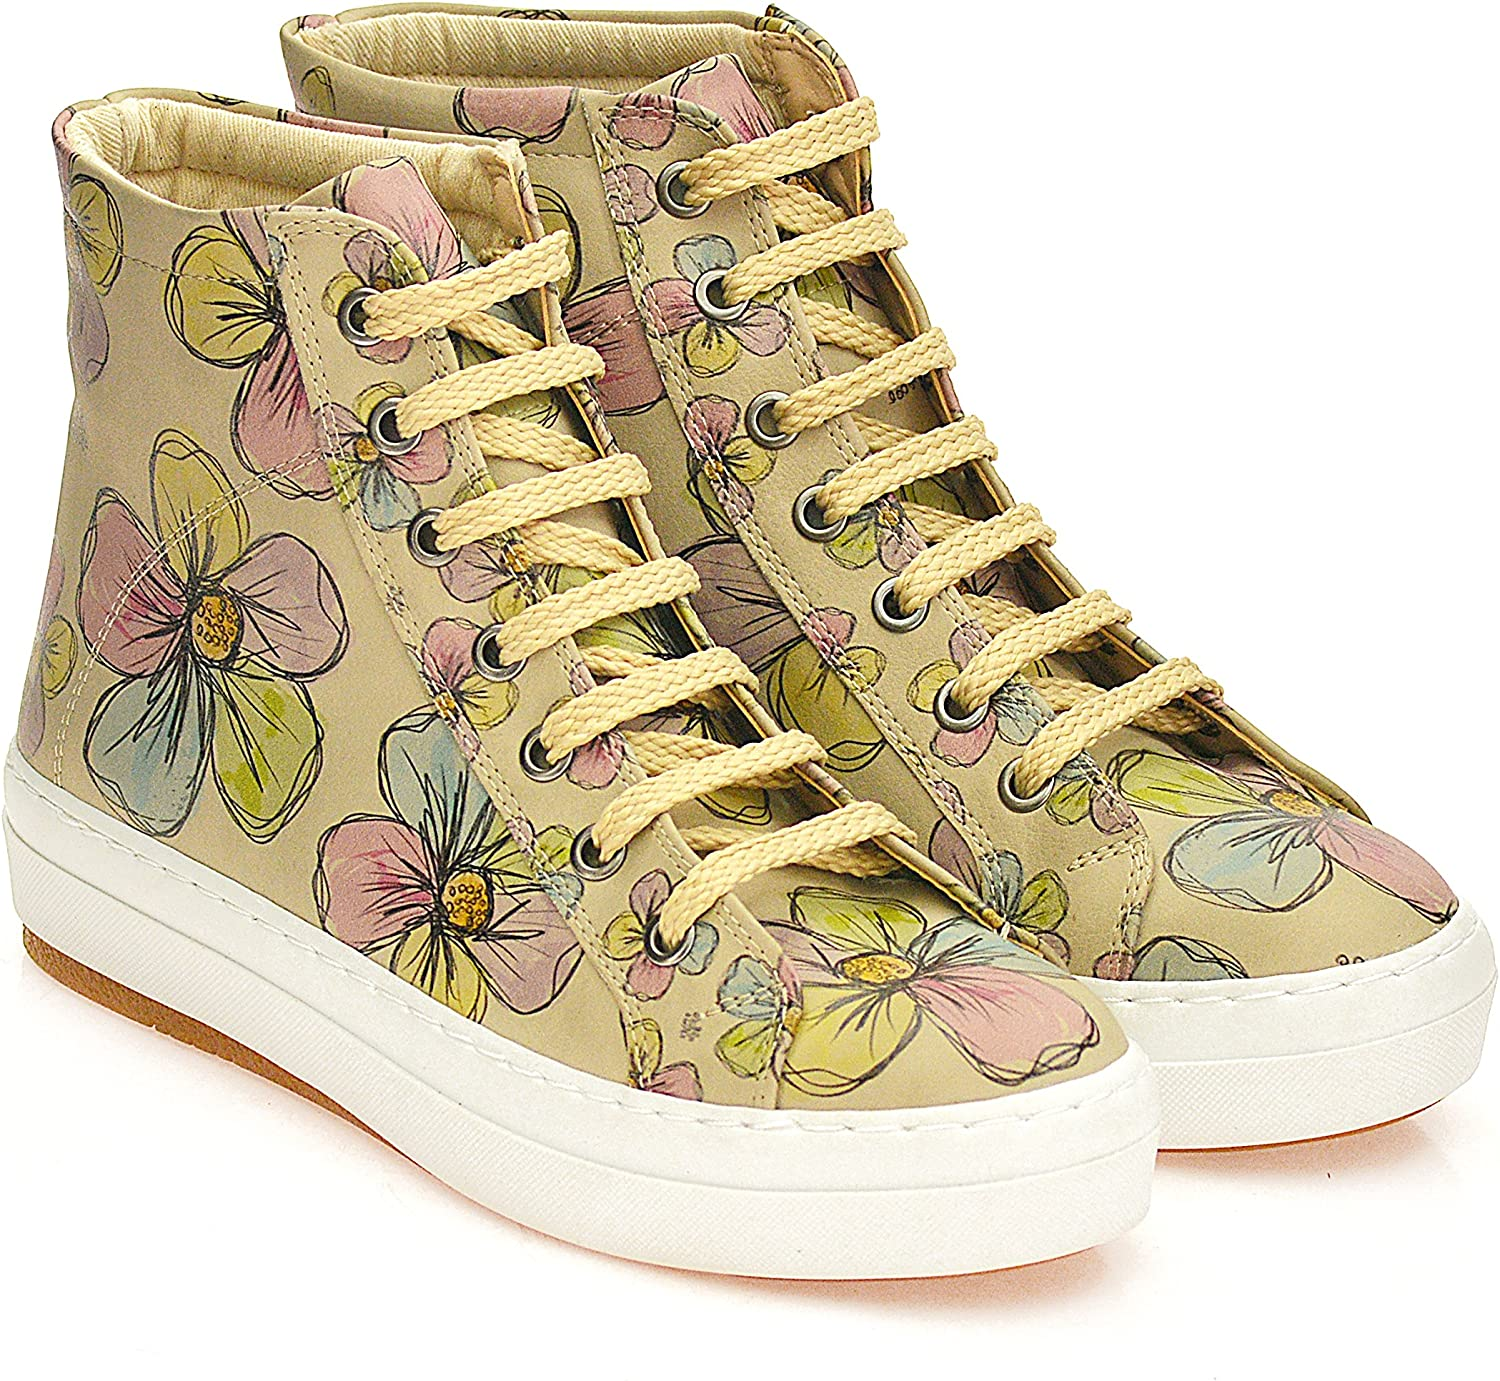 GOBY Women's shoes ''Floral Print High Top Sneakers Boot'' CW2017